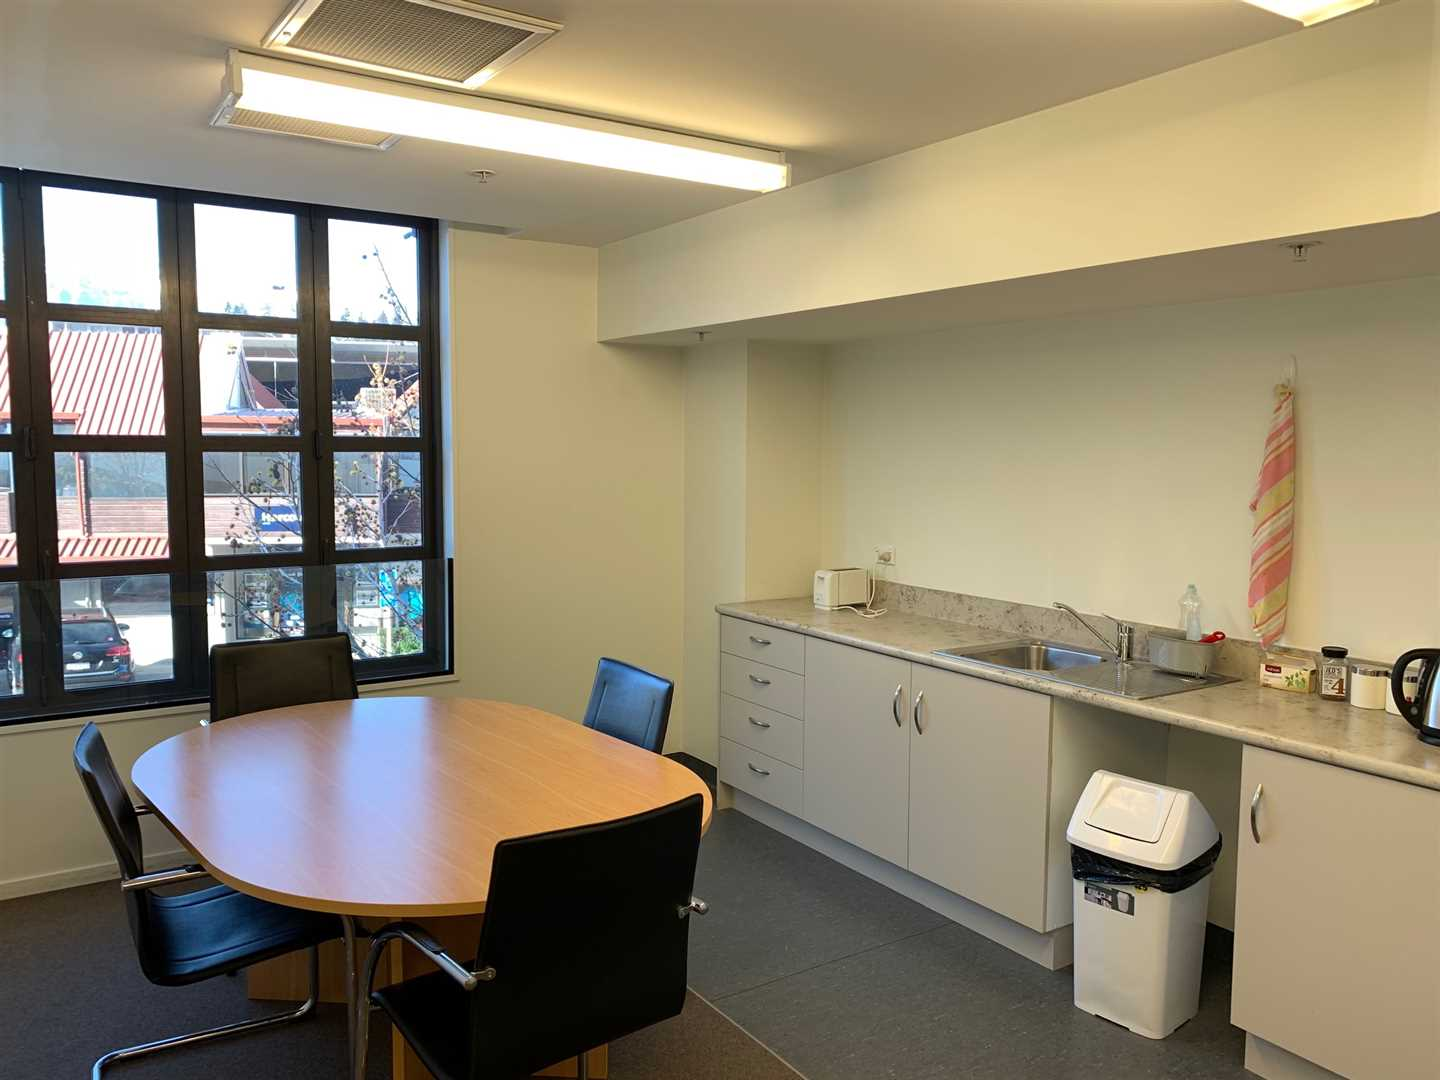 Office shared kitchenette & lunch room